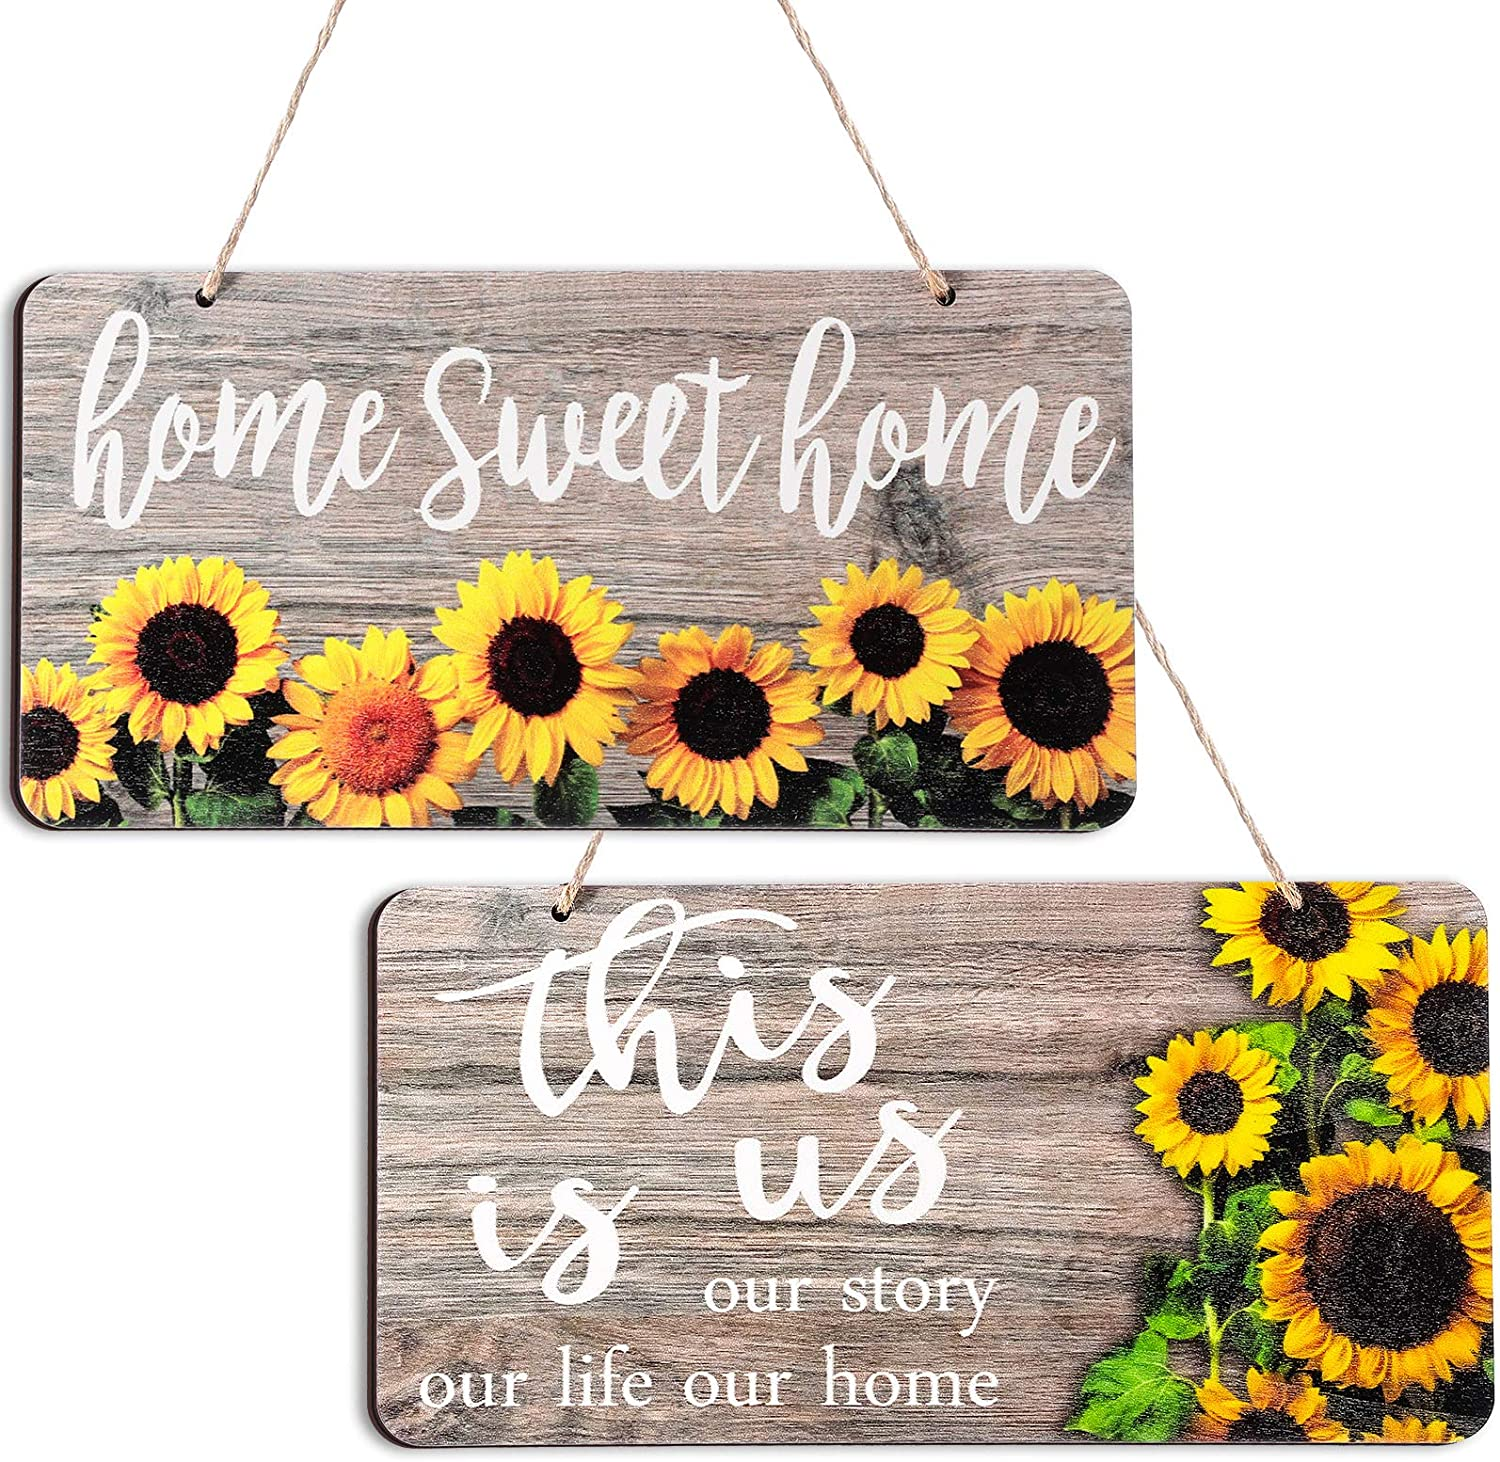 2 Pieces Sunflower Wood Front Porch Door Decor Wall Plaque Sunflower This is us Sign Home Sweet Home Sign Sunflower Rustic Farmhouse Porch Decorations for Home Wall Door Hanging Decor, 12 x 6 Inch